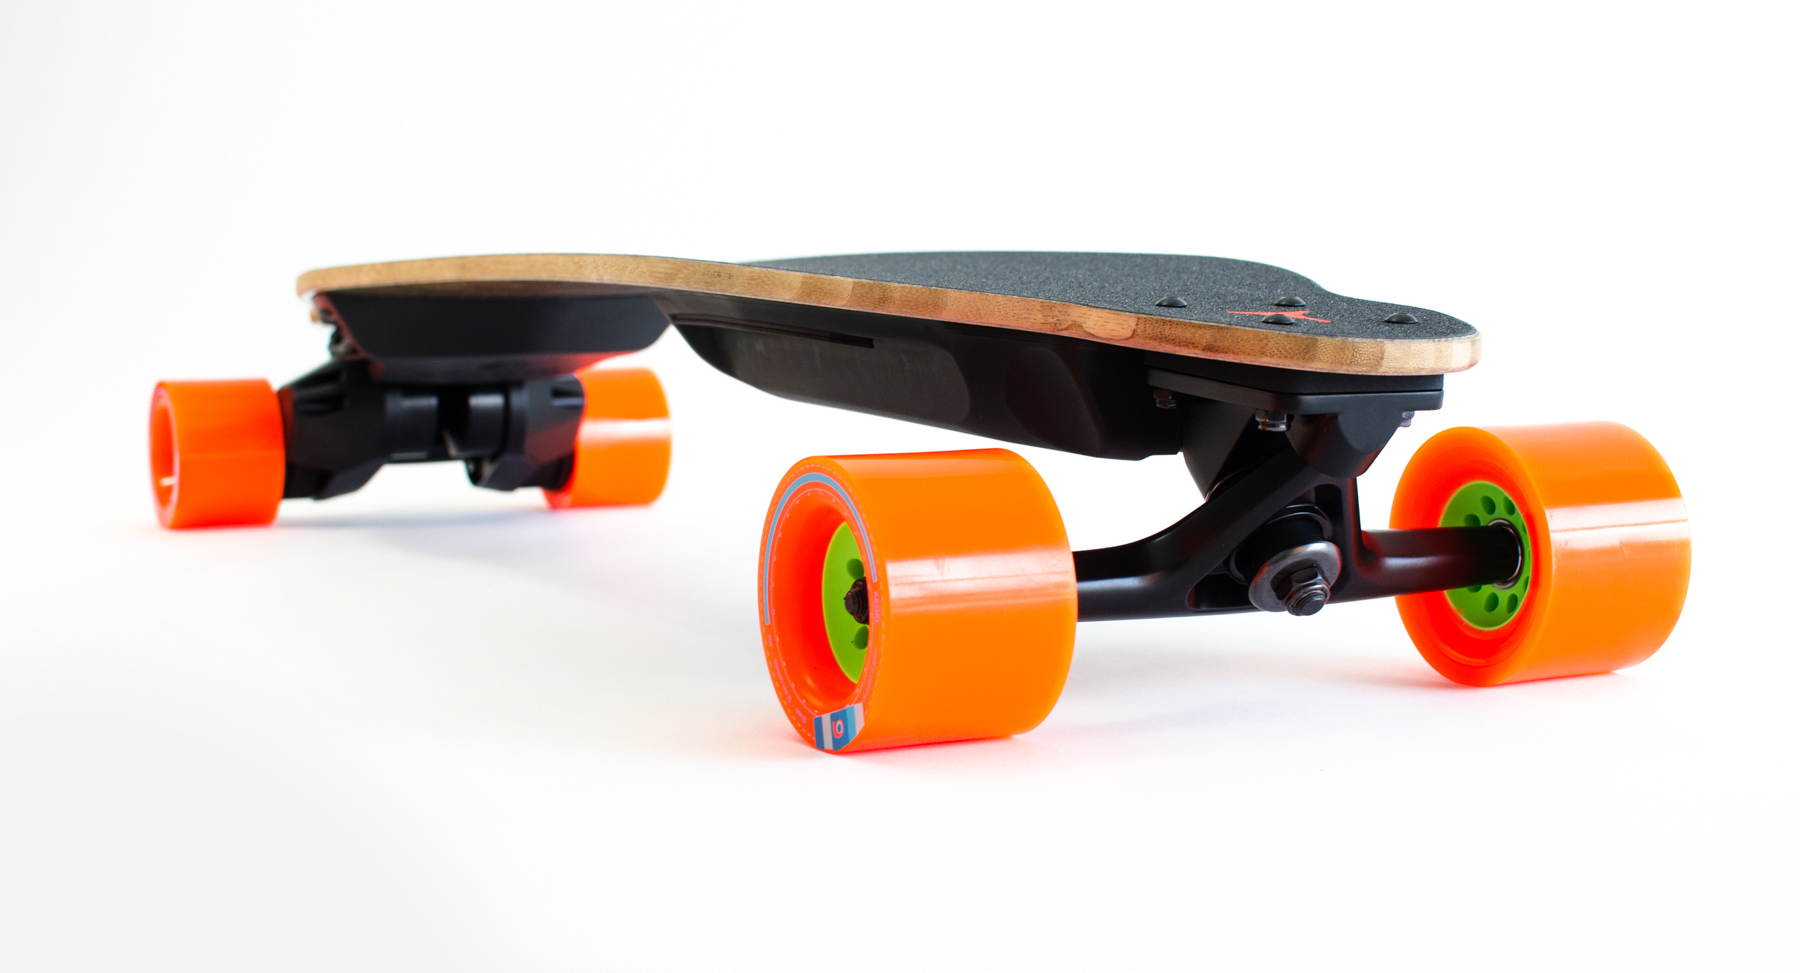 Boosted\u2019s v2 electric skateboards go 12 miles with swappable batteries \u2013 TechCrunch